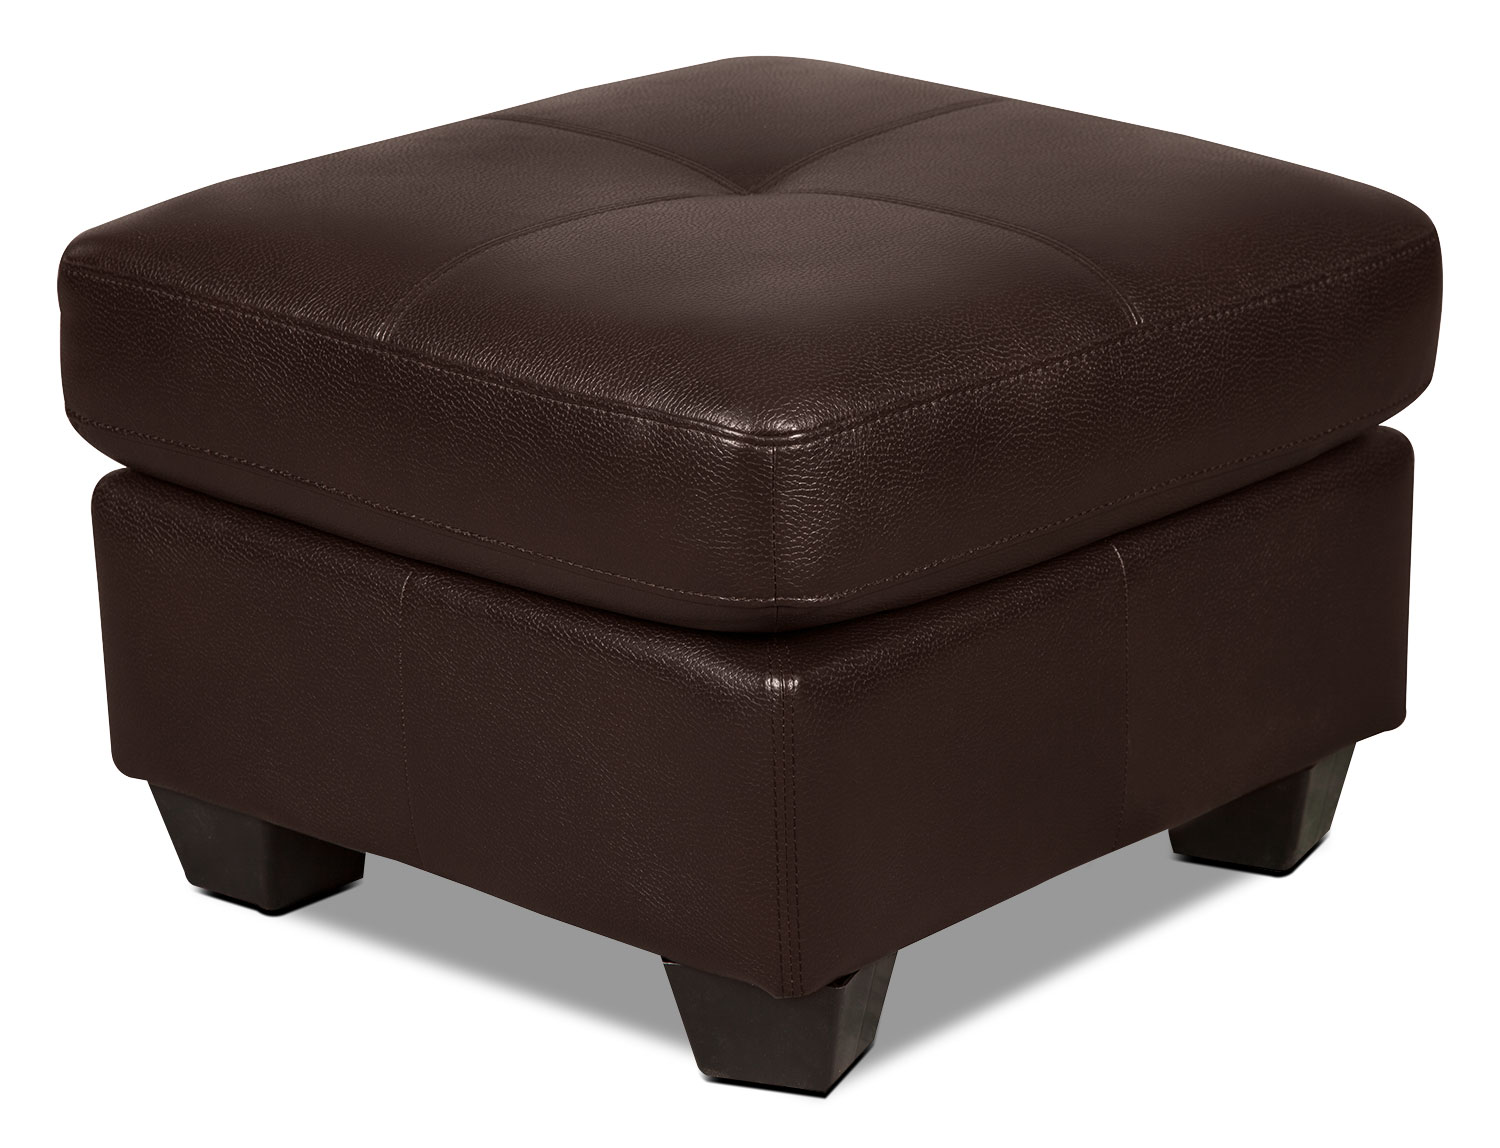 Costa Leather-Look Fabric Ottoman – Brown